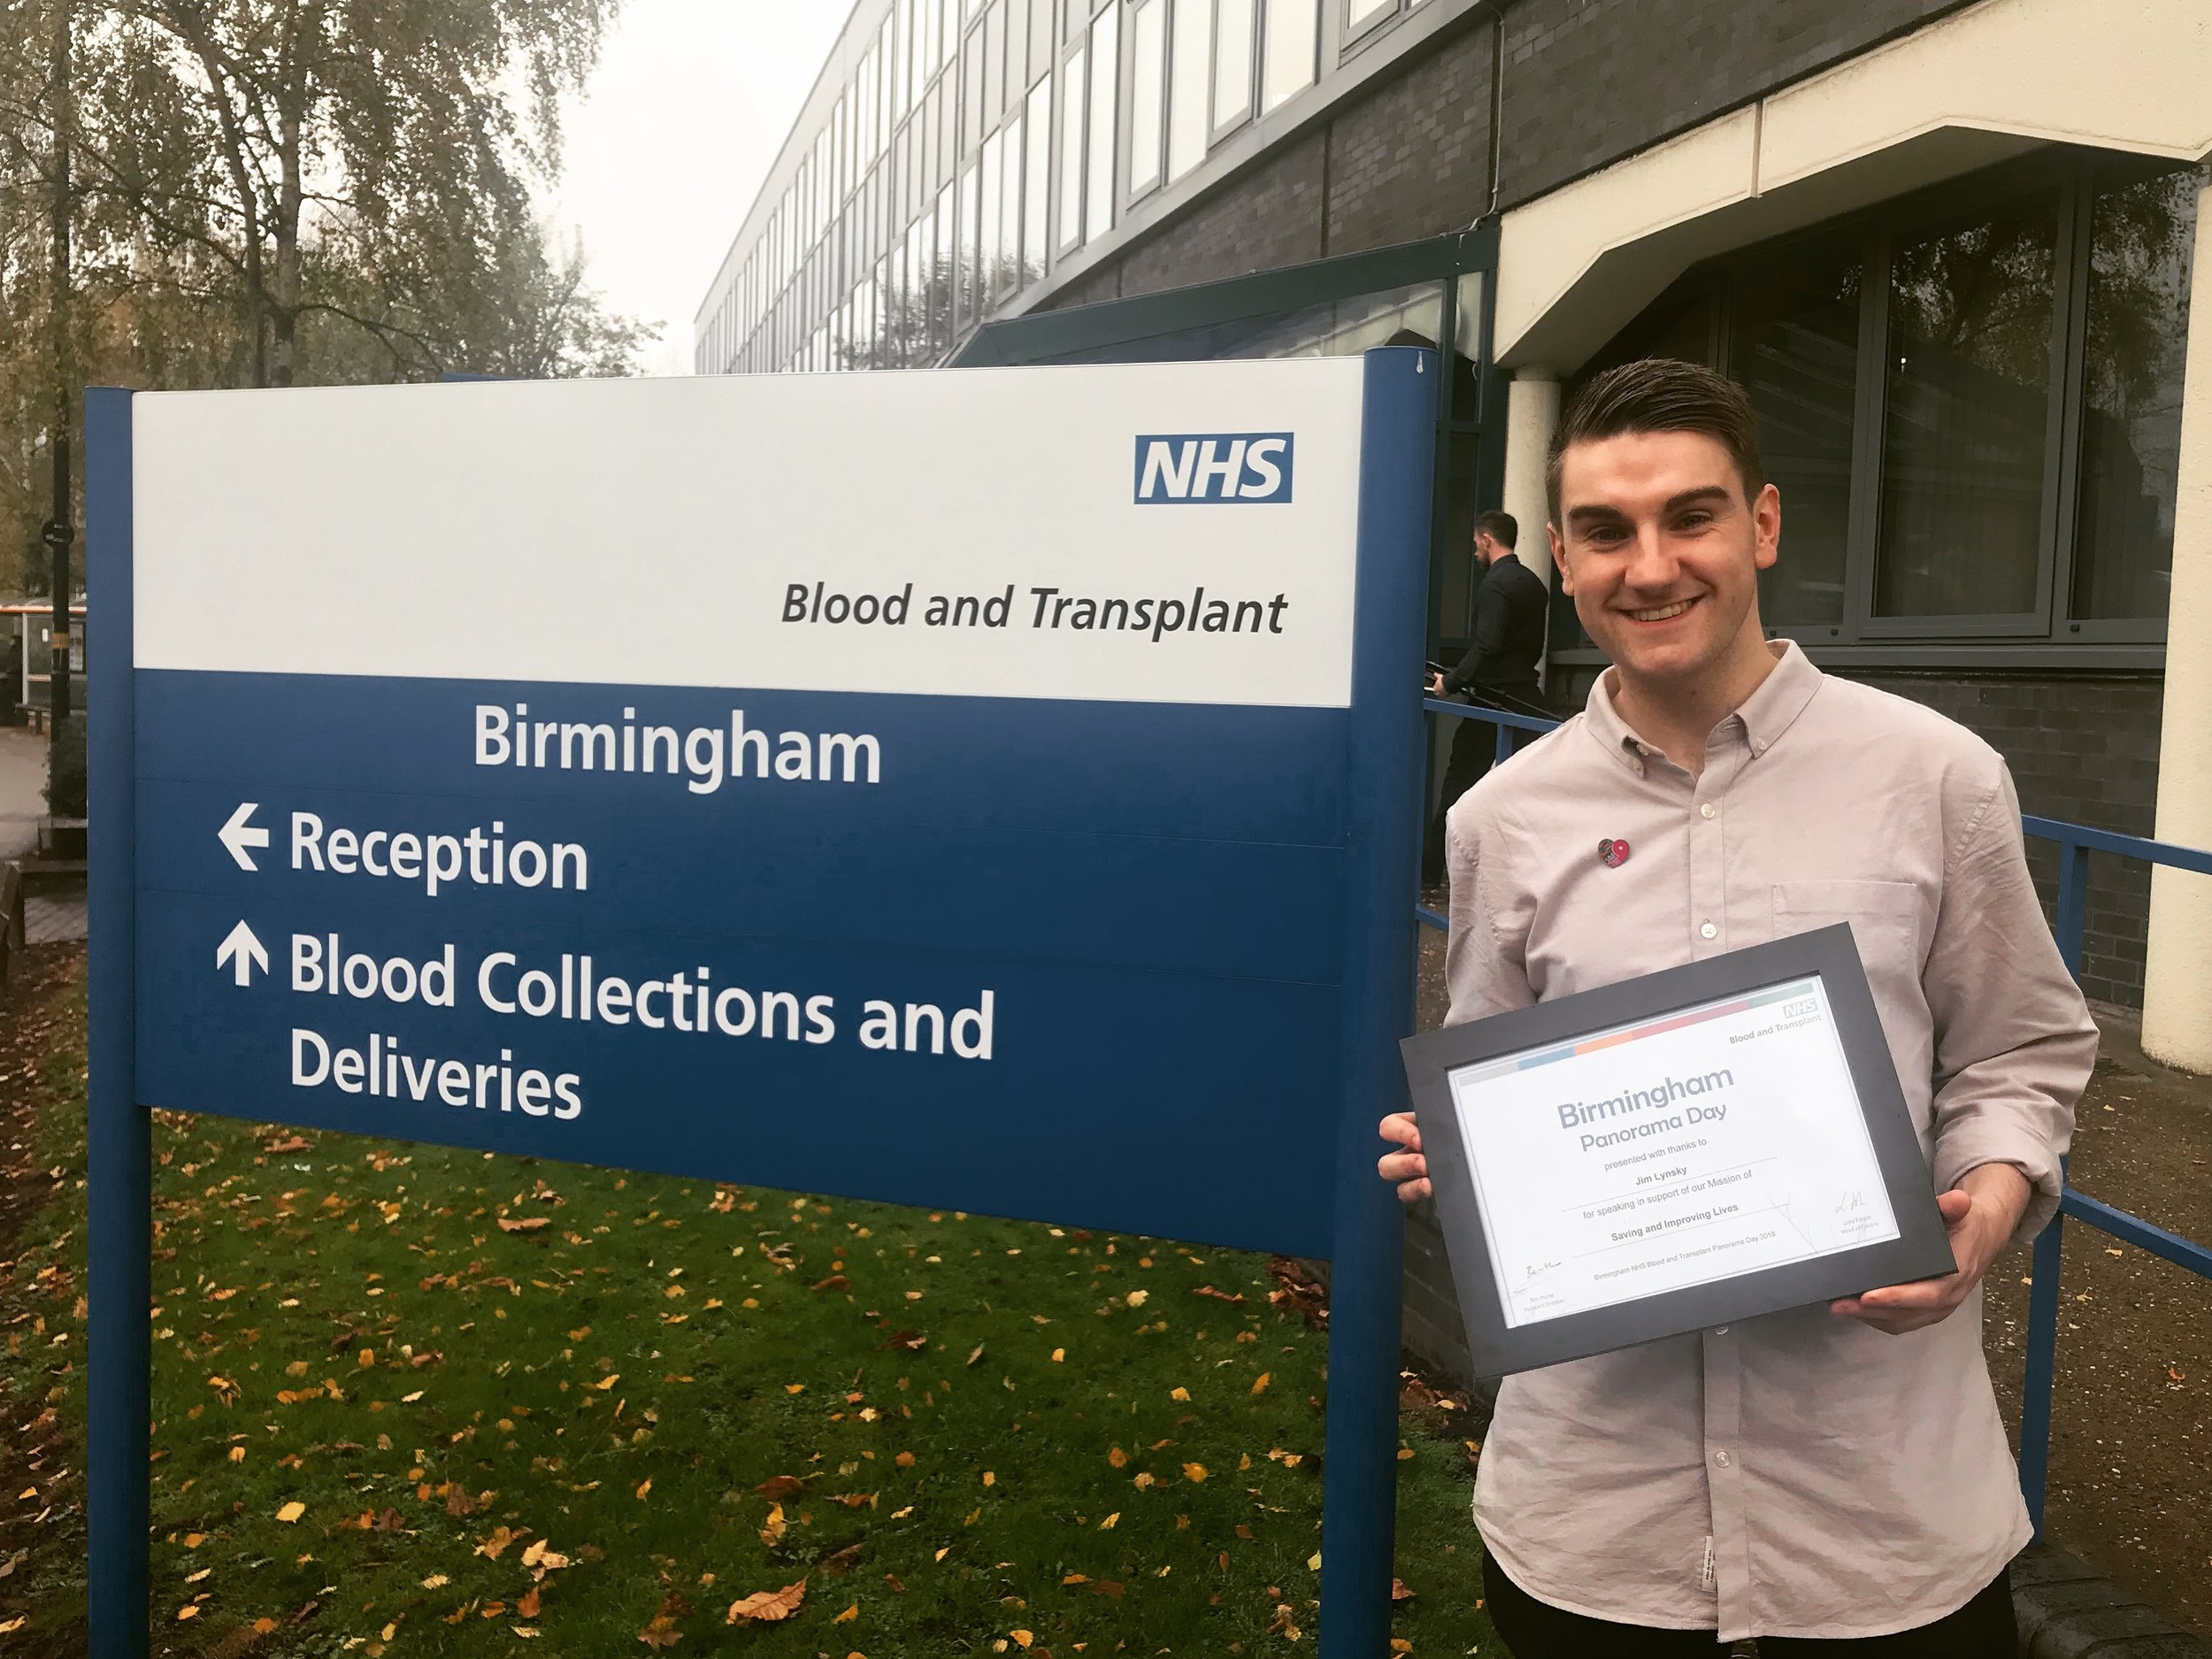 Save9Lives Founder - Jim Lynskey - shares his campaign with members of NHS Blood & Transplant.